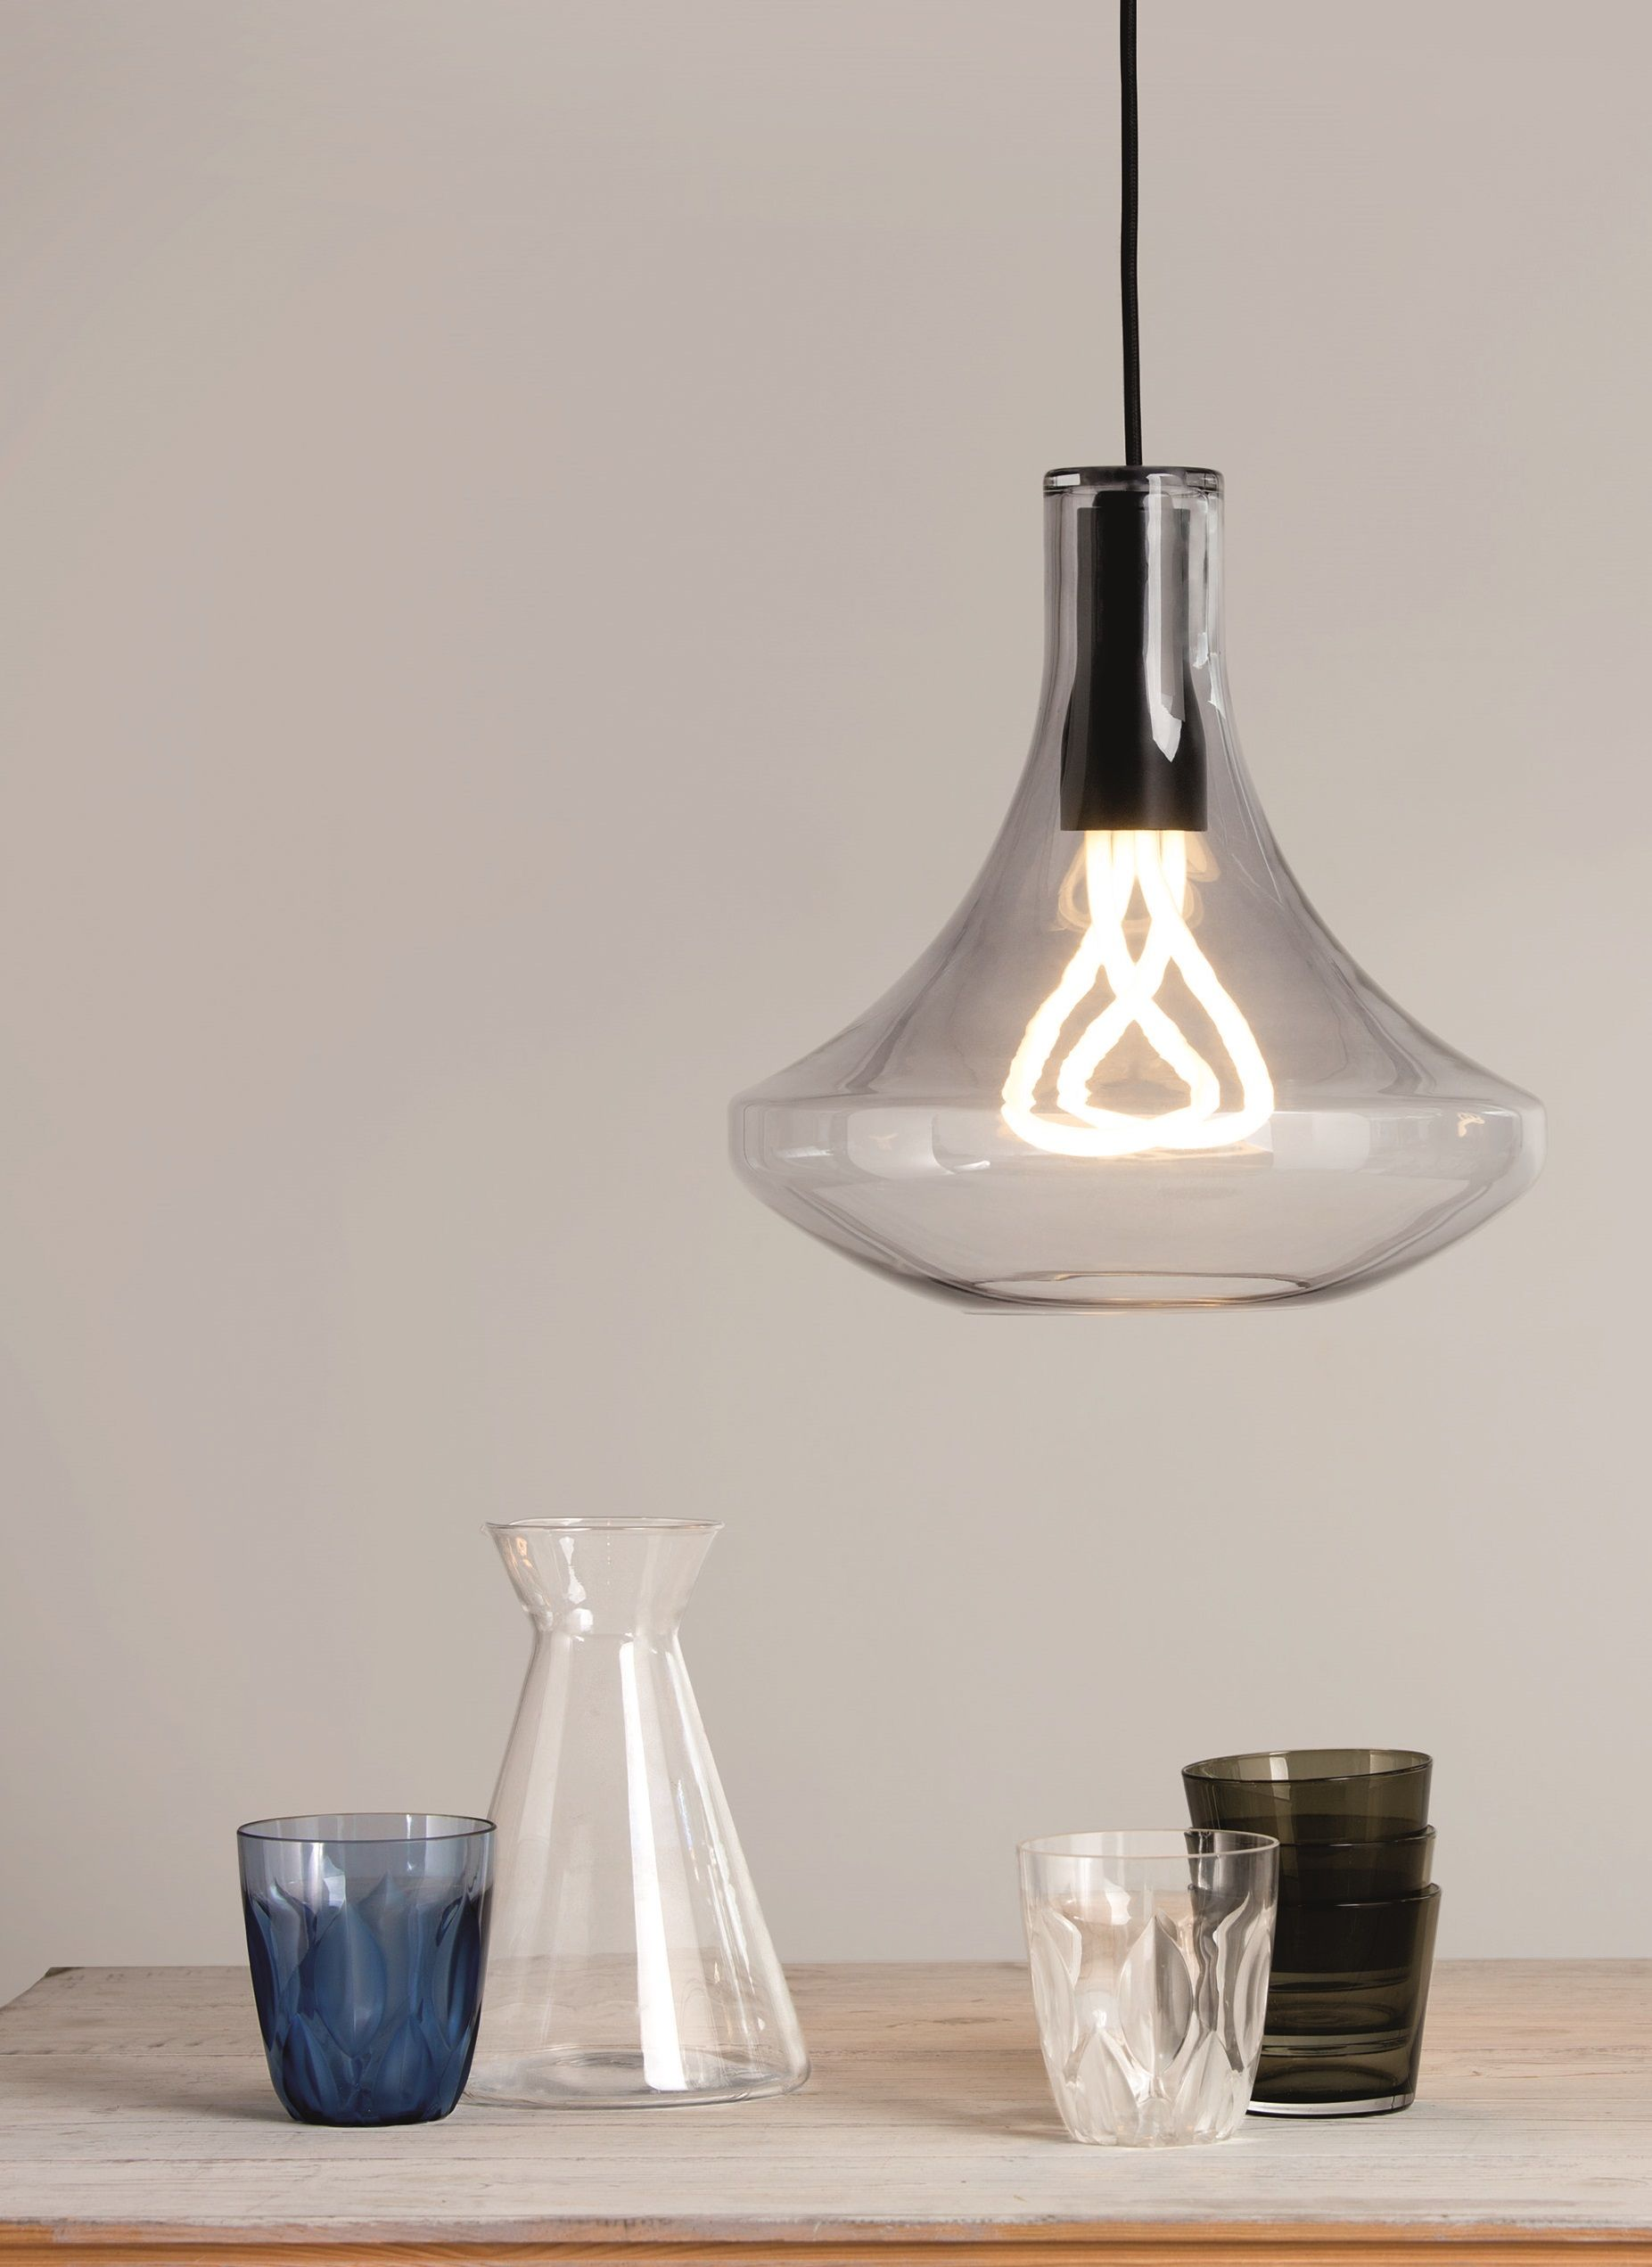 lamp bulb bar plumen original fbx with model max models furniture pendant cables cable light bulbs obj